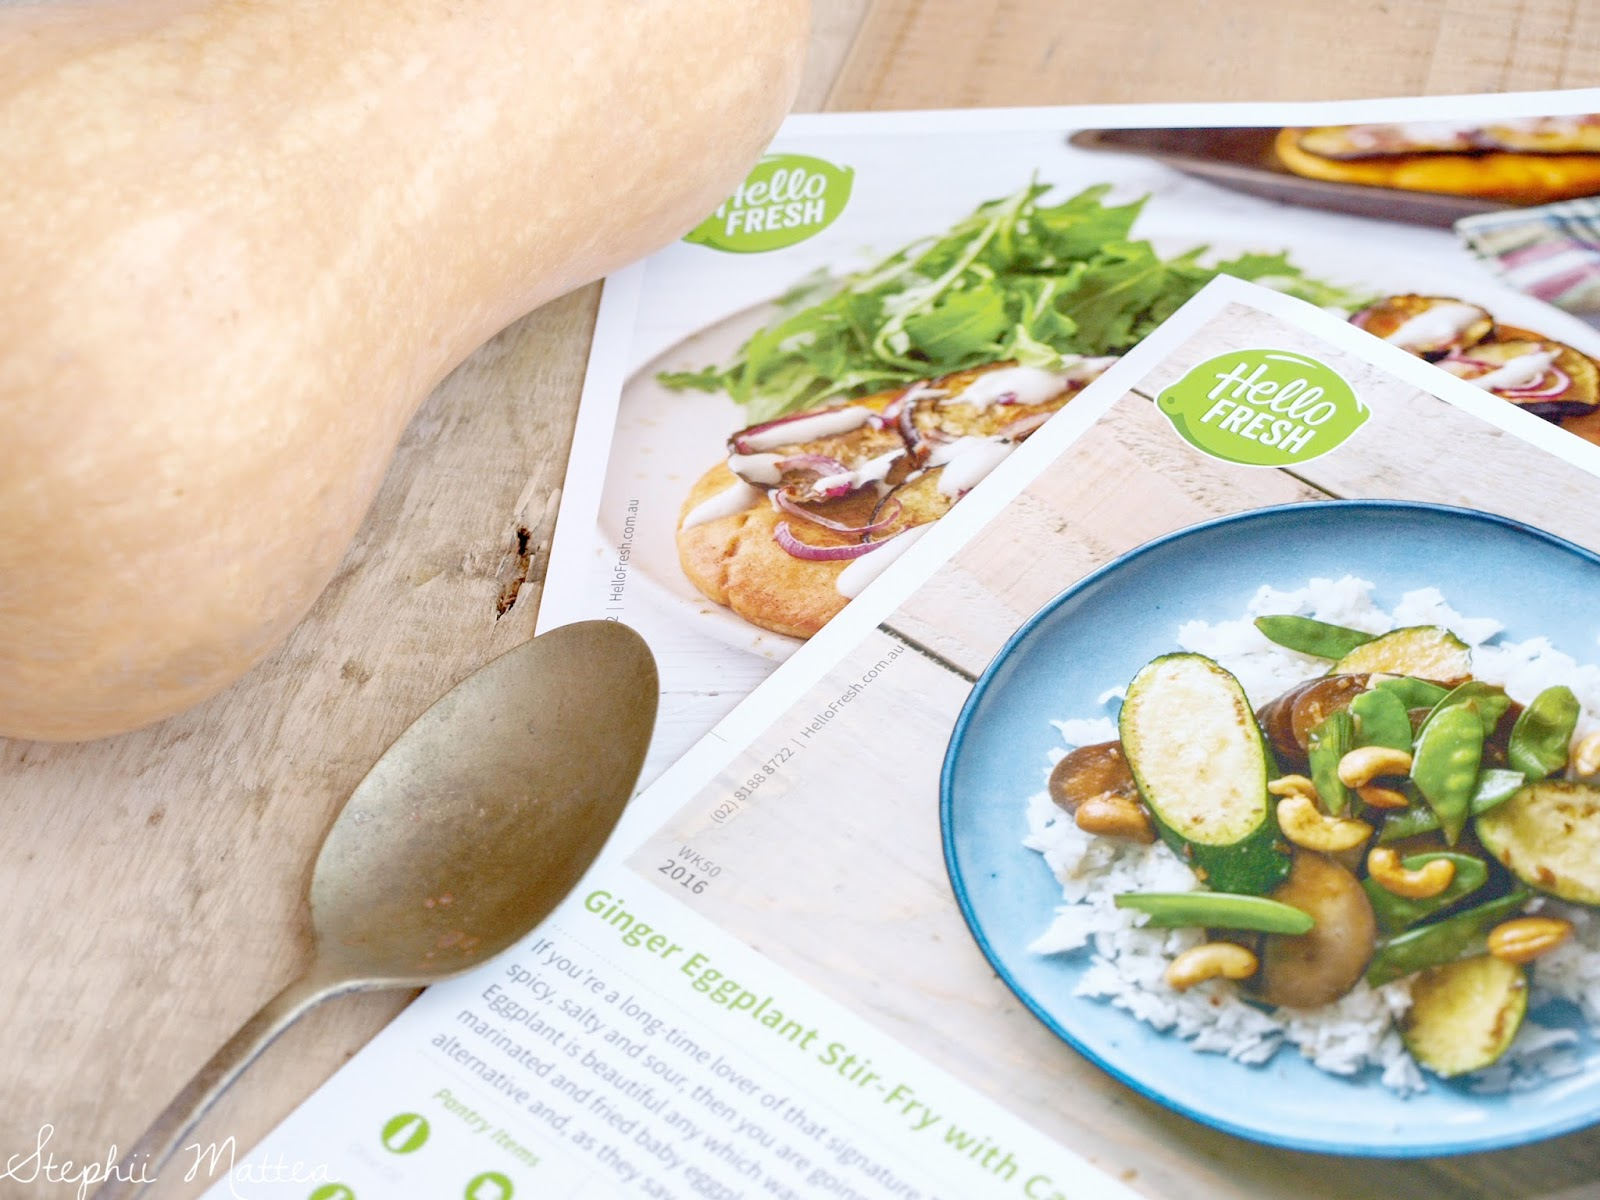 Cheap Meal Kit Delivery Service Hellofresh Price Outright